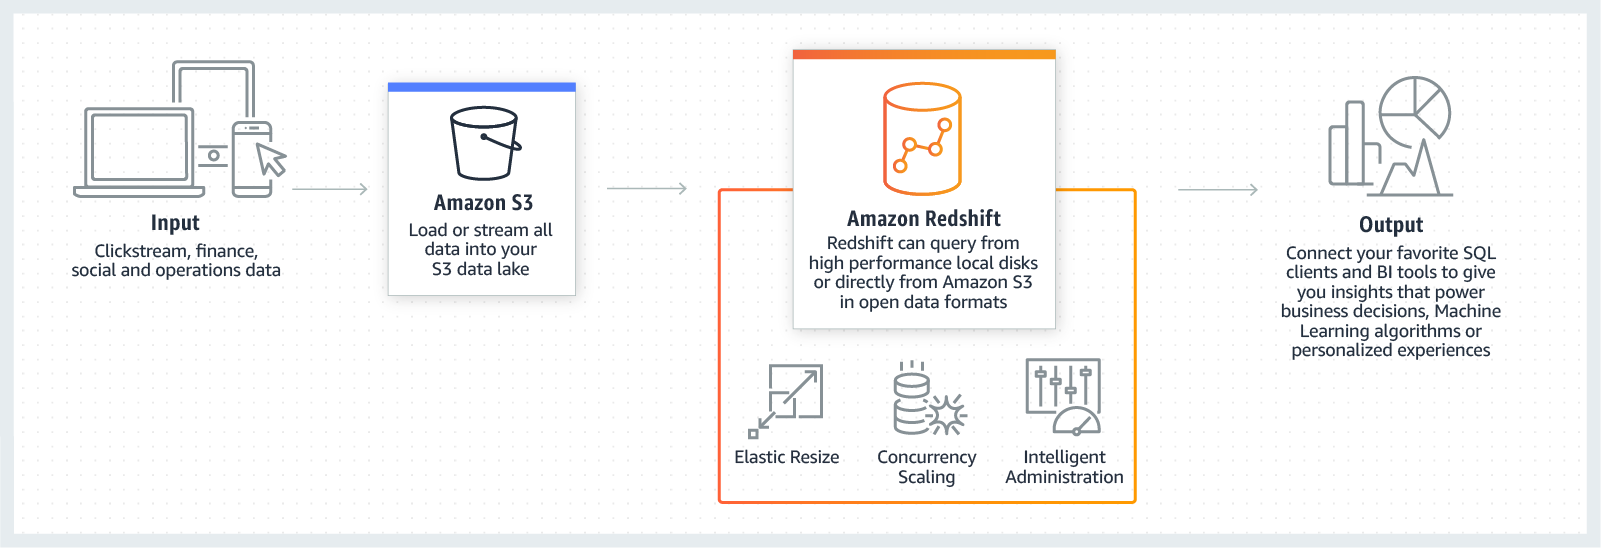 product-page-diagram-AWS-Redshift-Launch_How-It-Works@1.5x